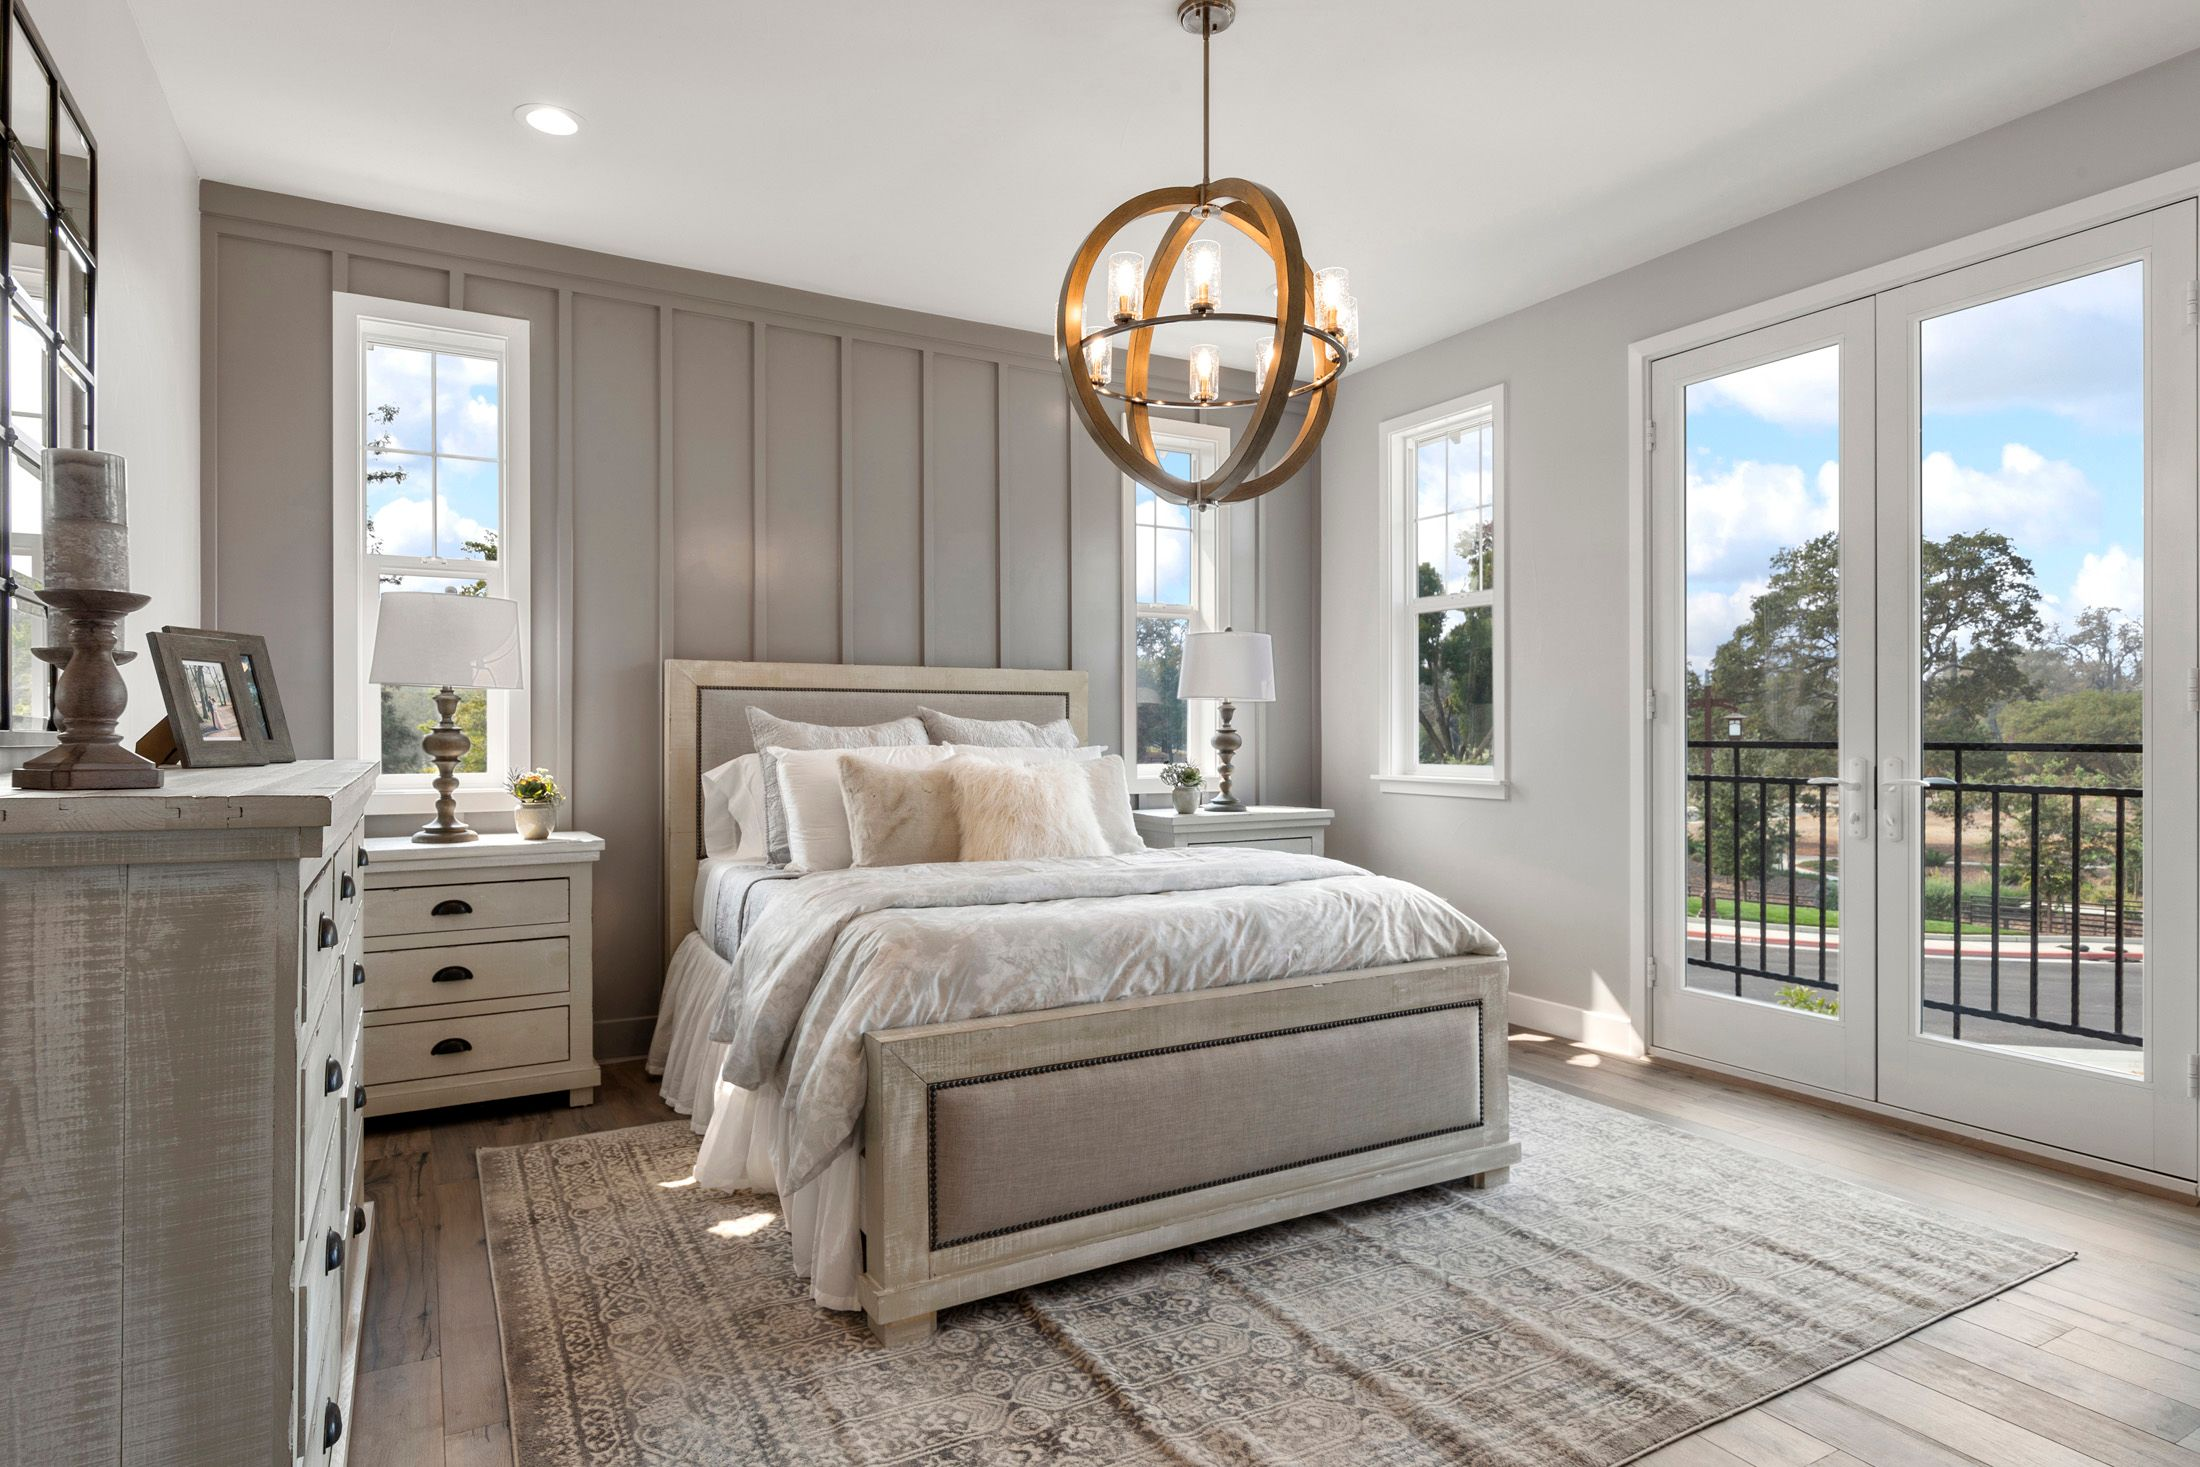 Bedroom featured in the Residence 4 By BlackPine Communites in Sacramento, CA